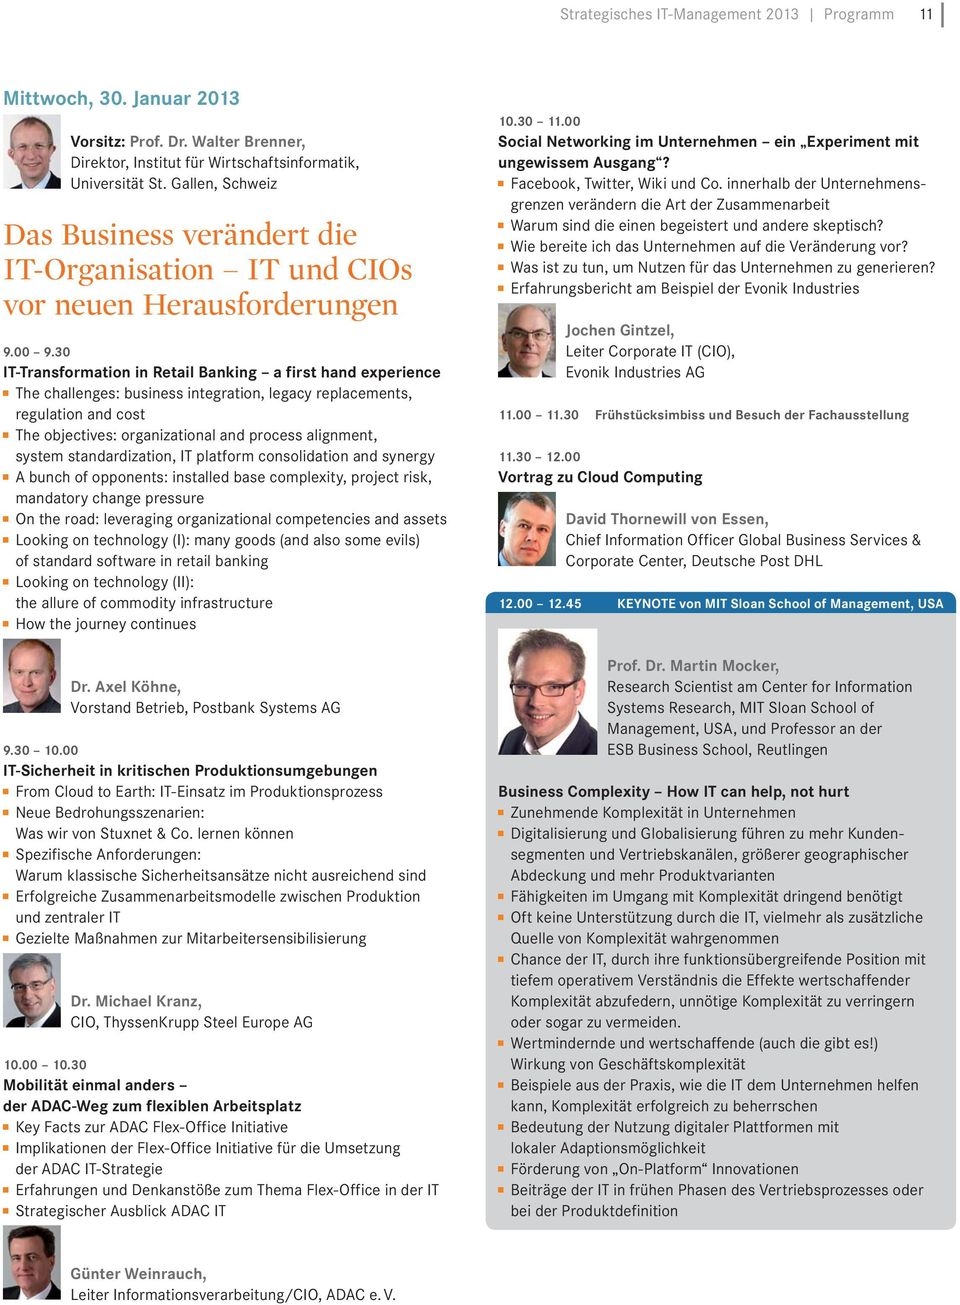 30 IT-Transformation in Retail Banking a first hand experience The challenges: business integration, legacy replacements, regulation and cost The objectives: organizational and process alignment,